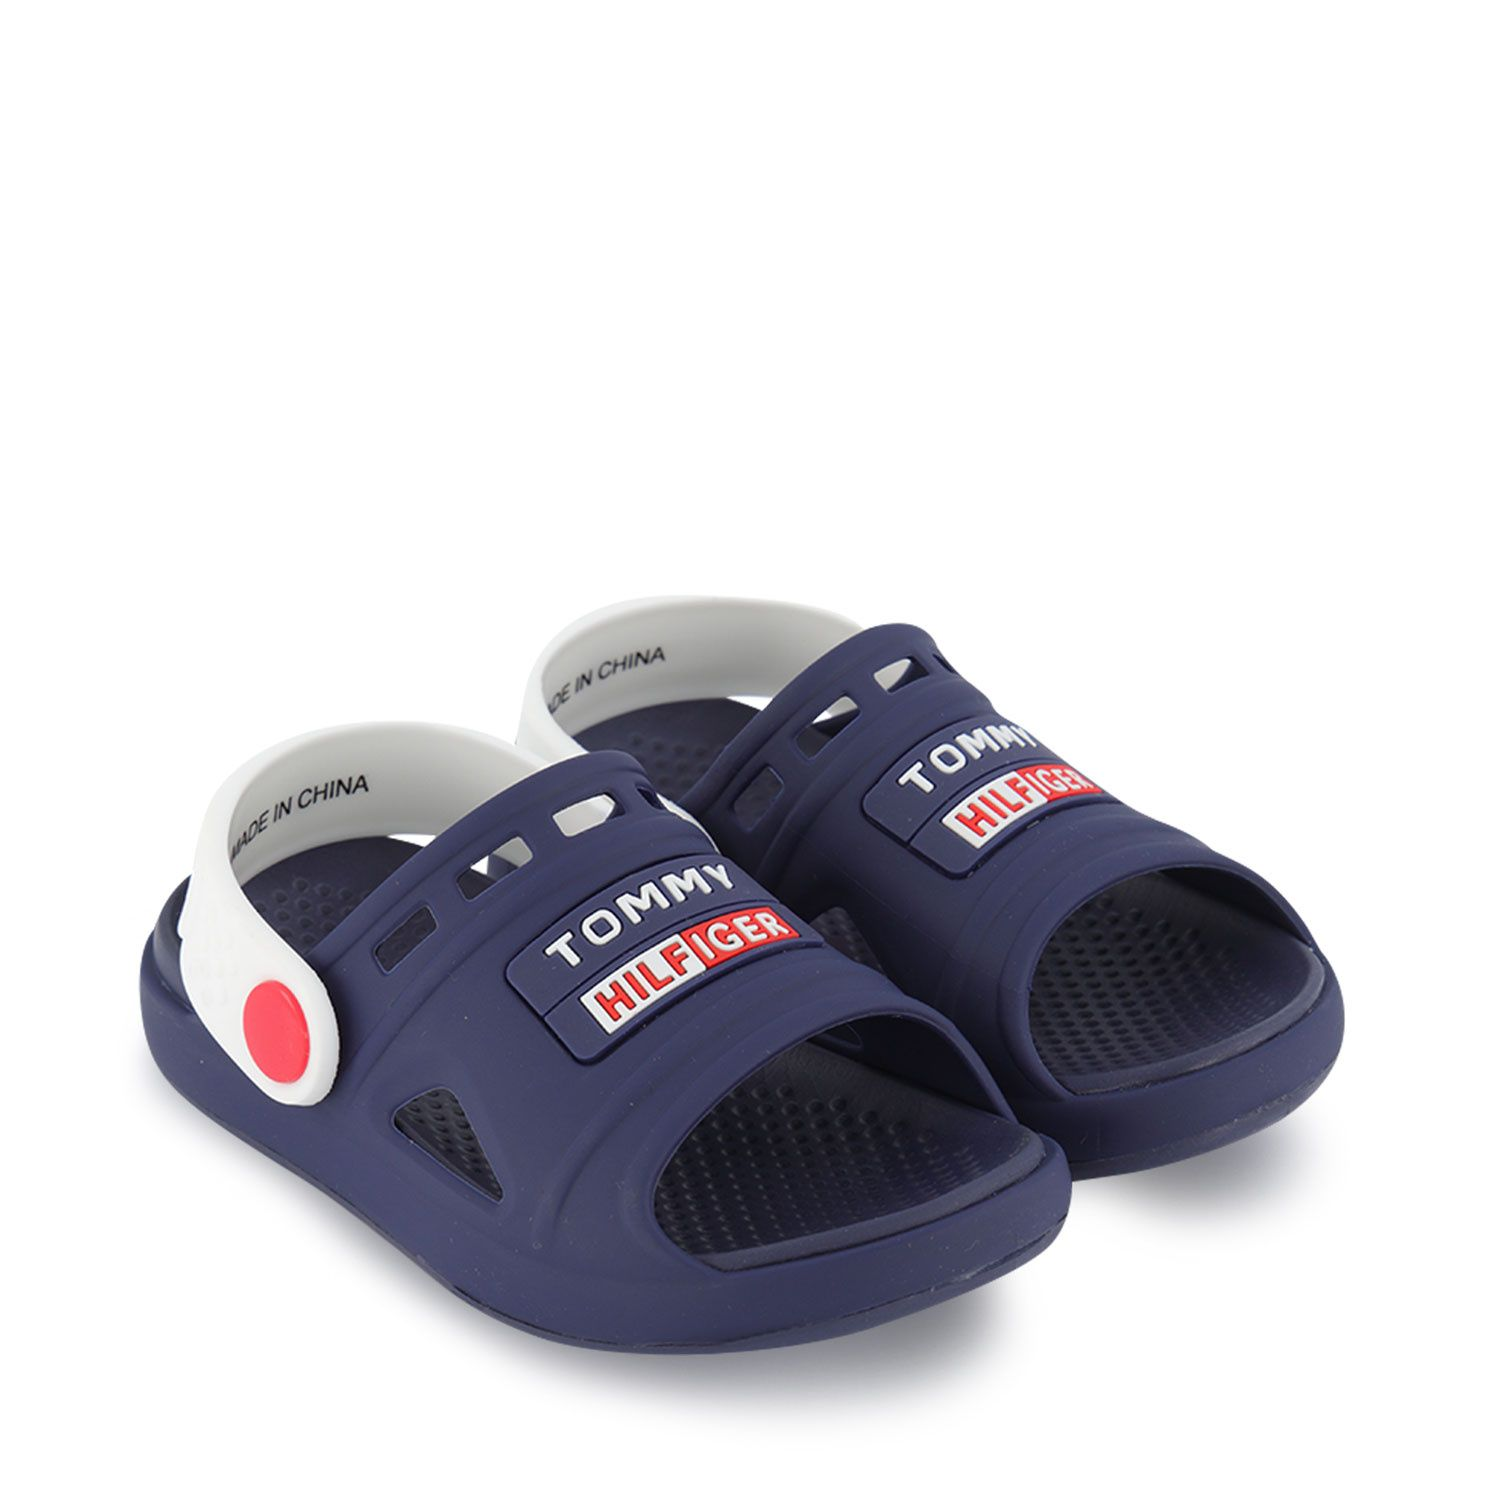 Picture of Tommy Hilfiger 31115 kids sandals navy